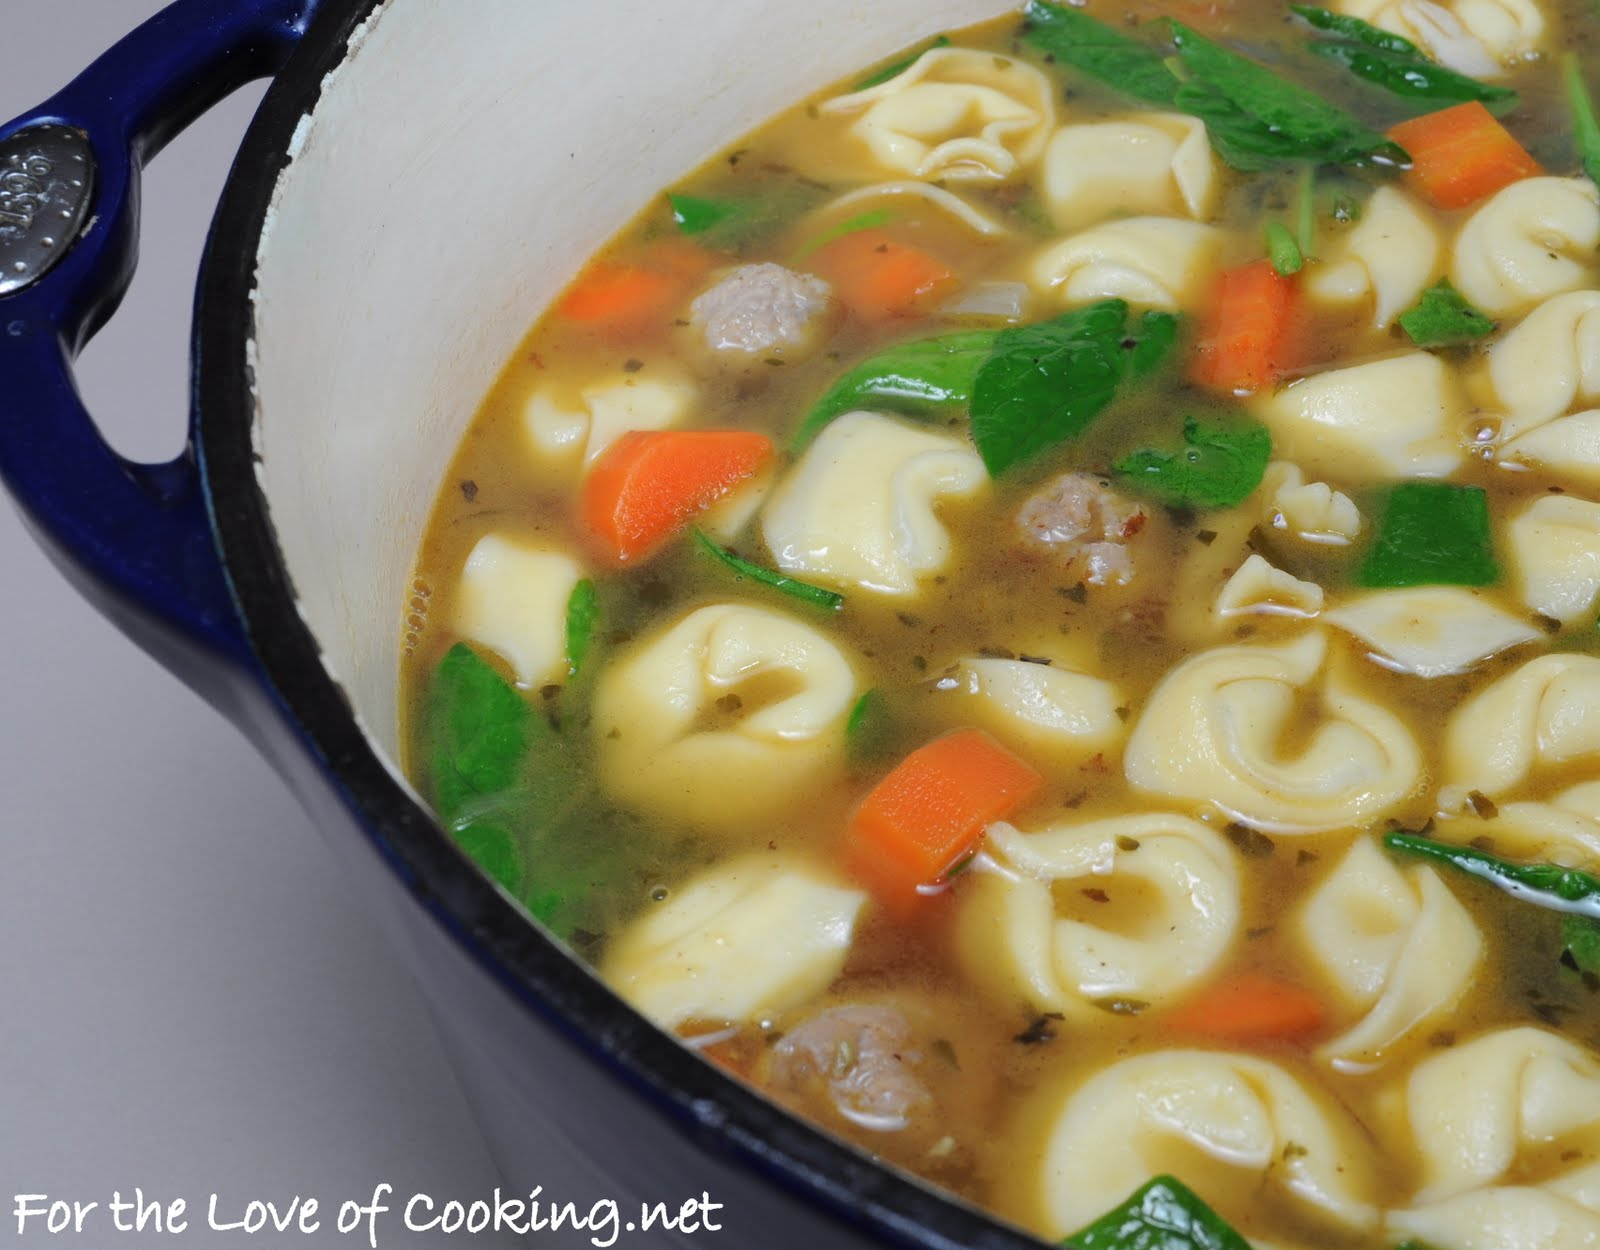 ... Love of Cooking » Turkey Italian Sausage and Cheese Tortellini Soup